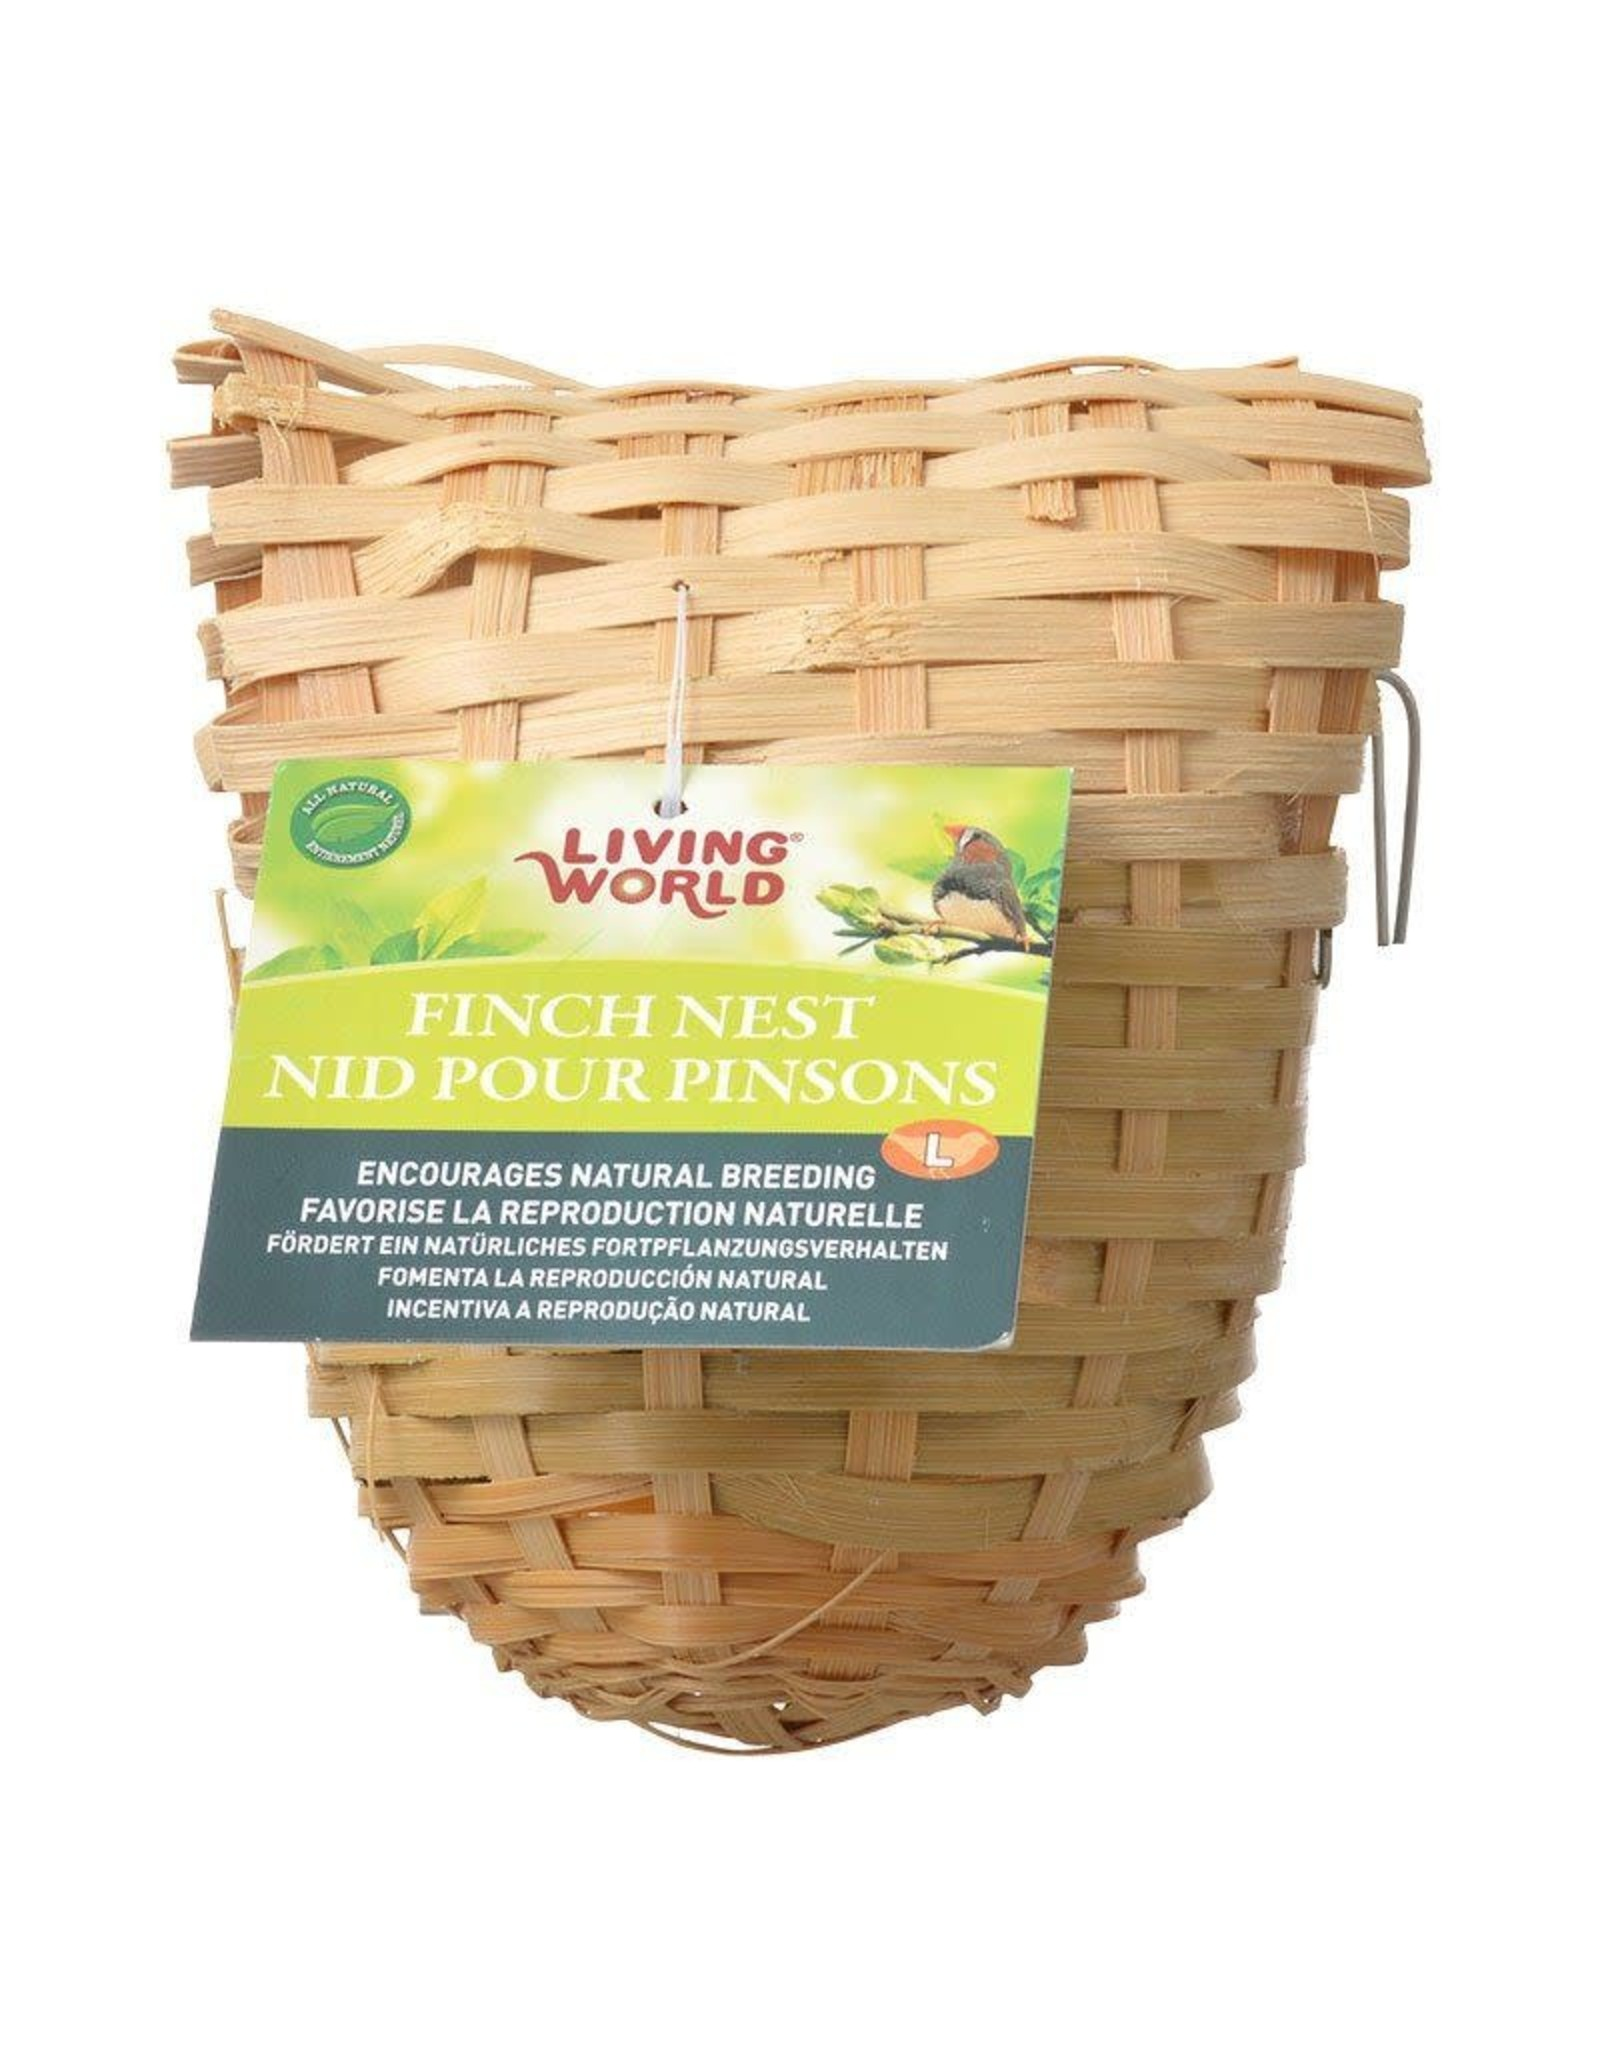 Living World Bamboo Finch Nest, Large